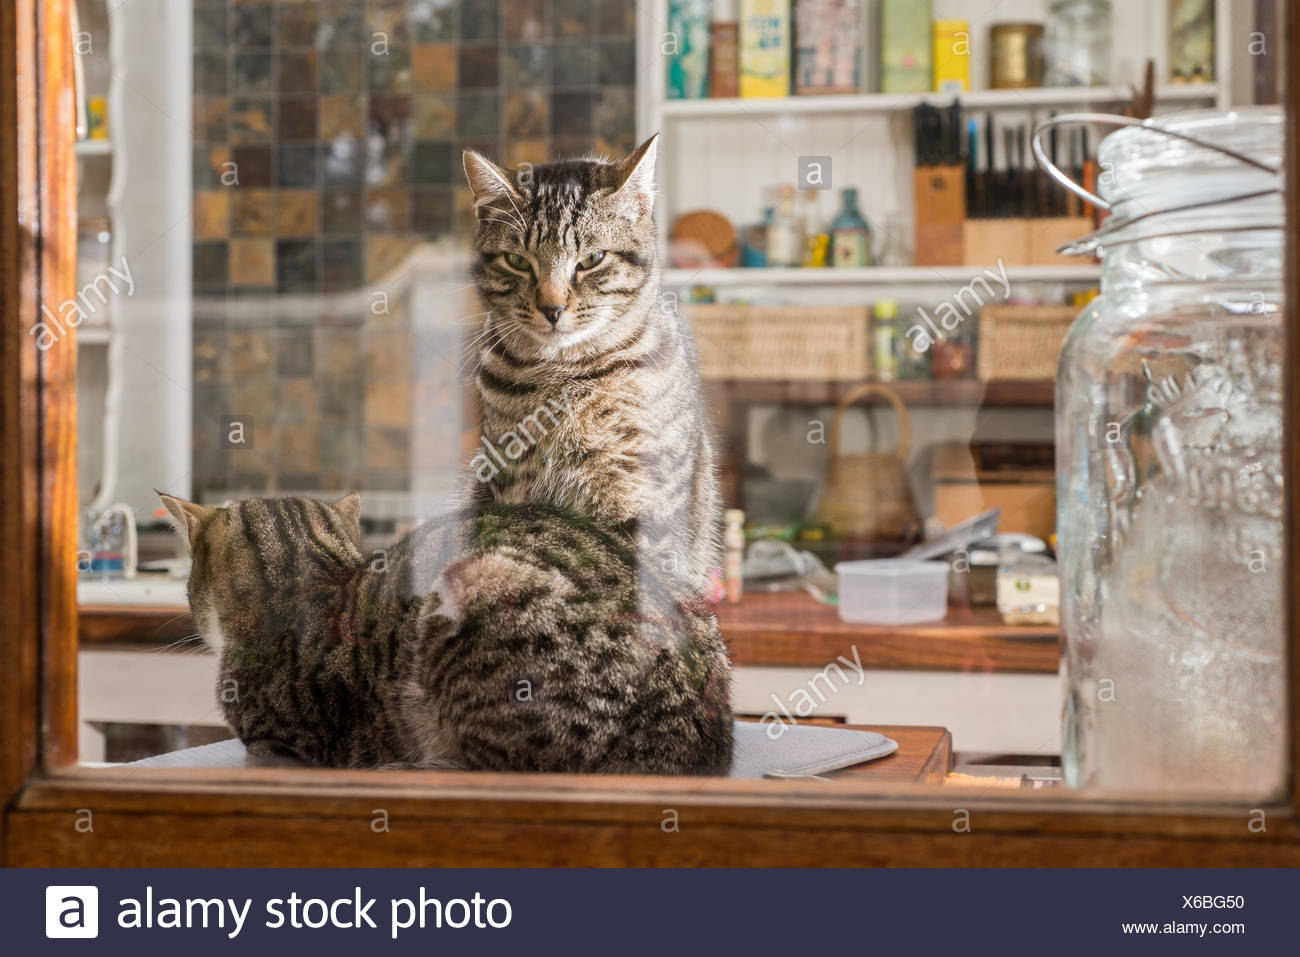 Two Cats In The Kitchen Stock Photo 279307980 Alamy